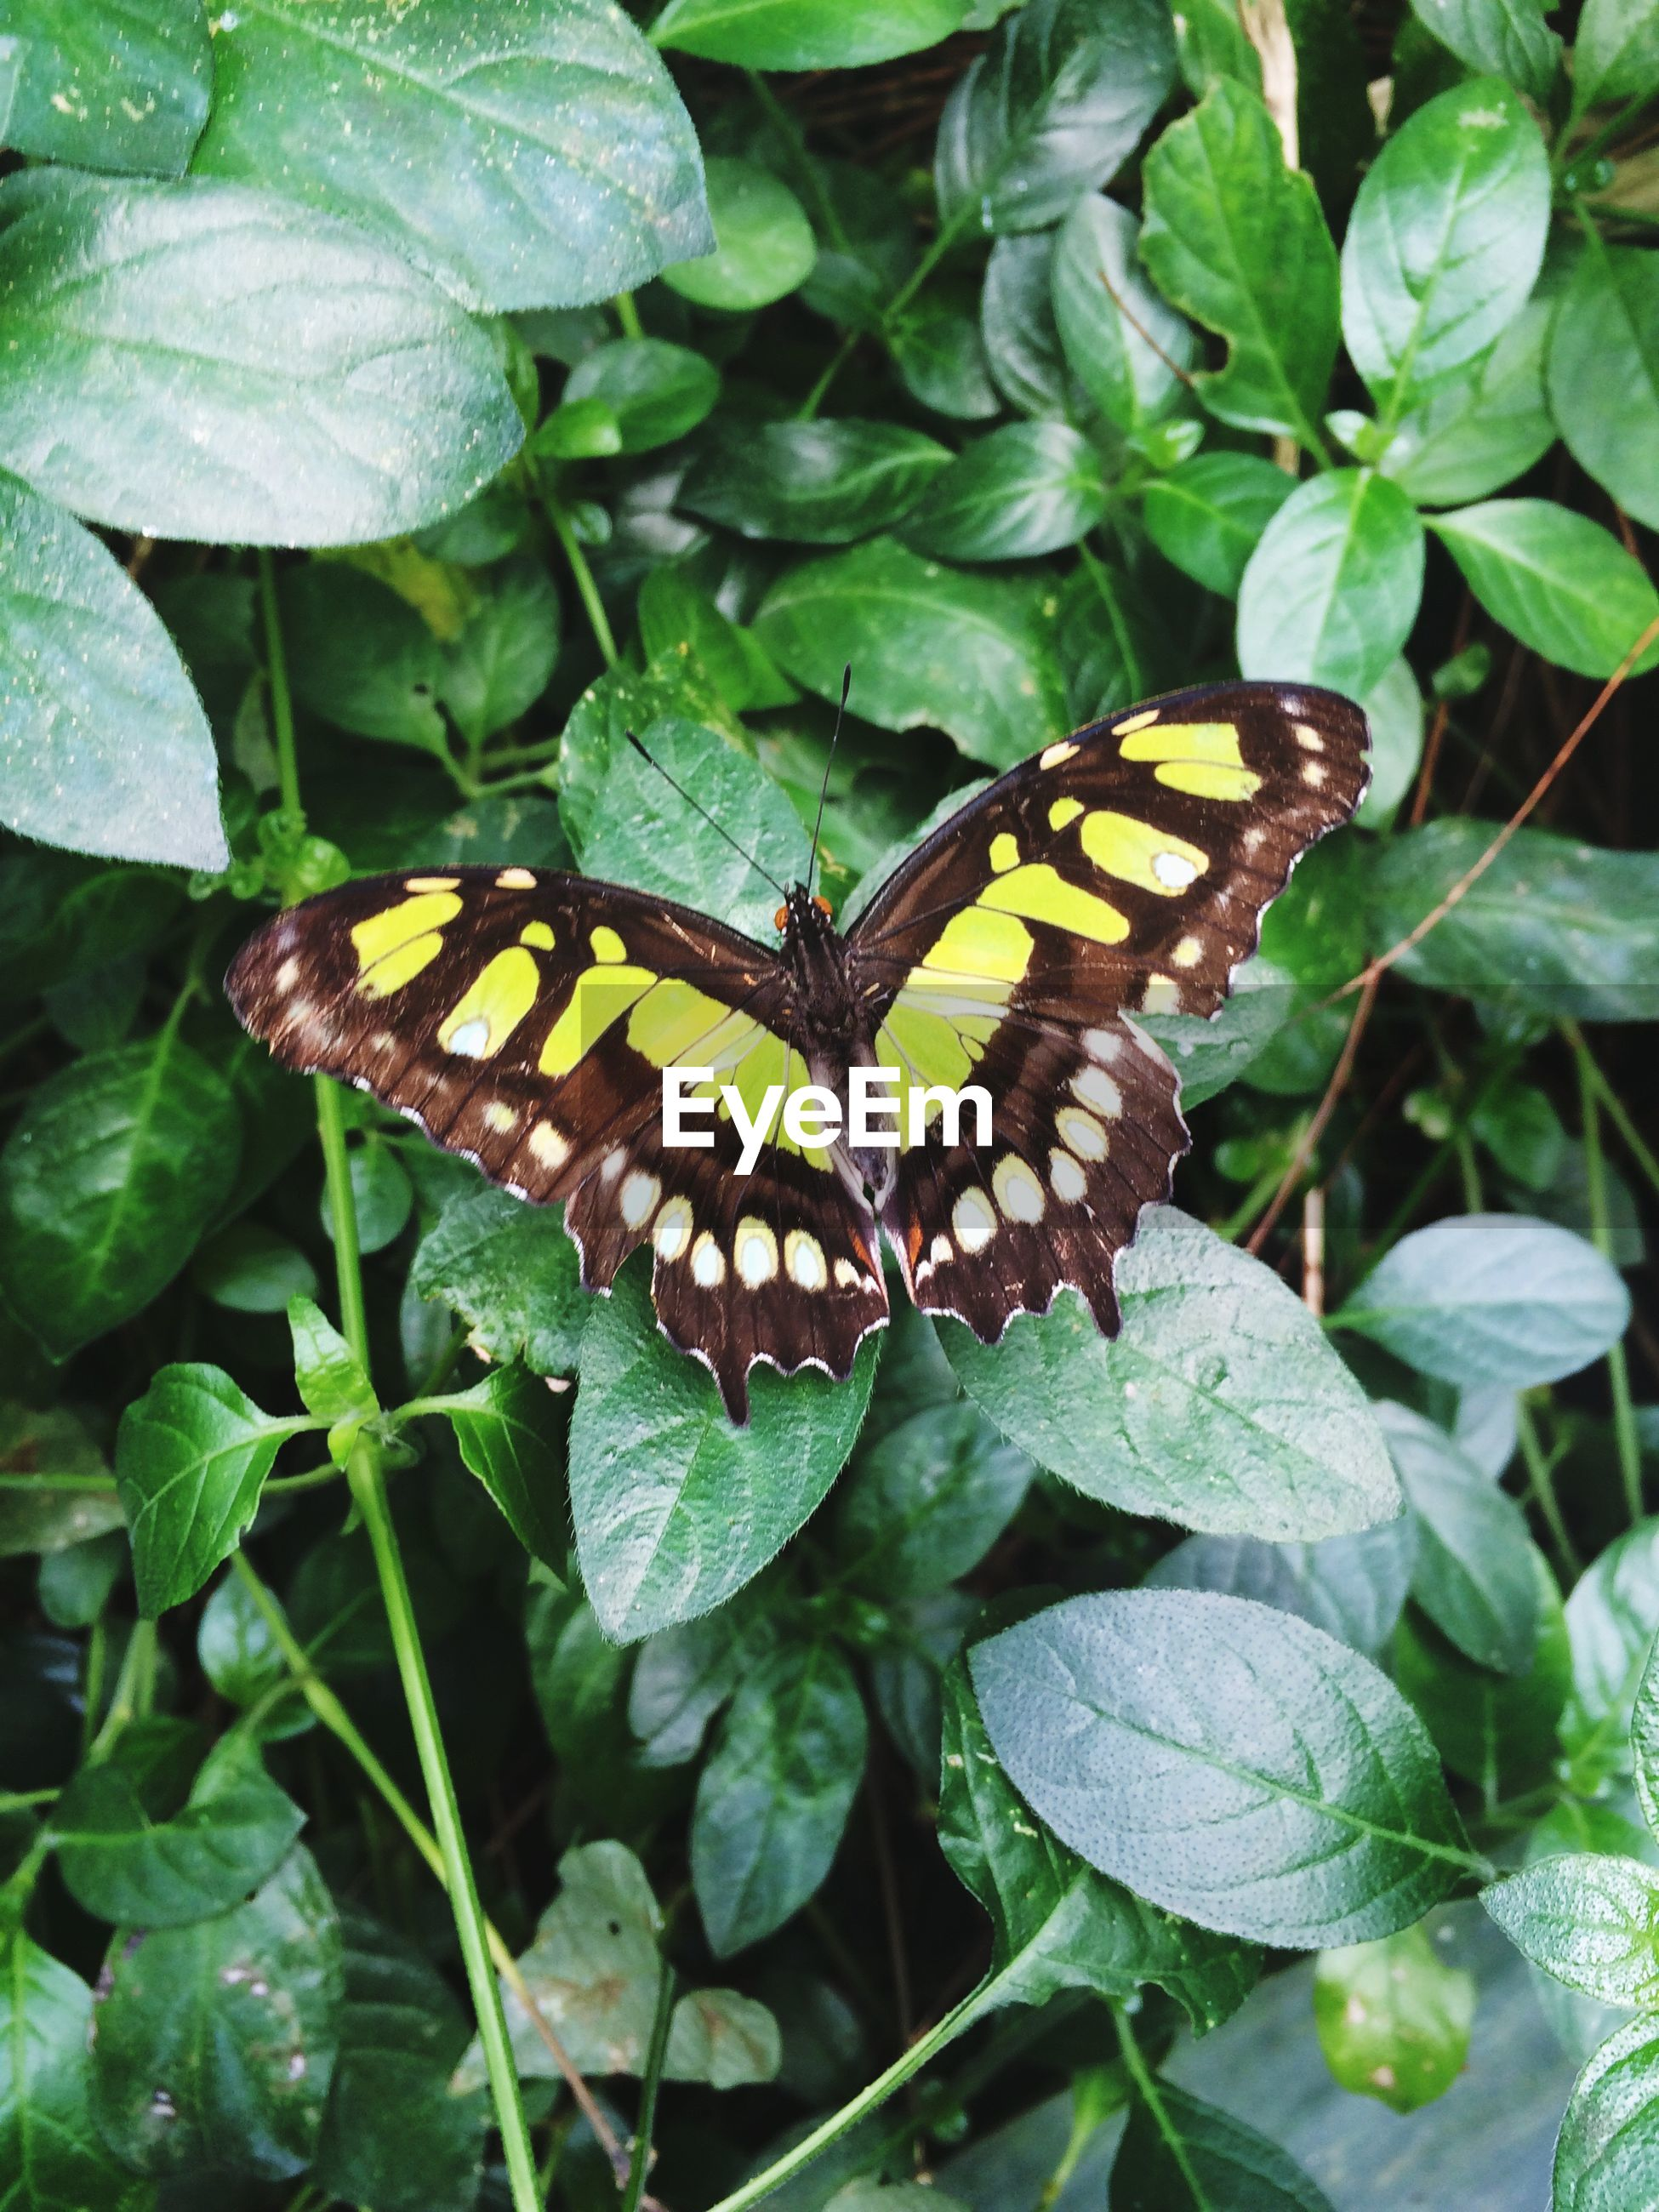 animals in the wild, animal themes, one animal, insect, wildlife, leaf, green color, plant, butterfly - insect, high angle view, close-up, nature, animal markings, growth, butterfly, focus on foreground, beauty in nature, natural pattern, outdoors, day